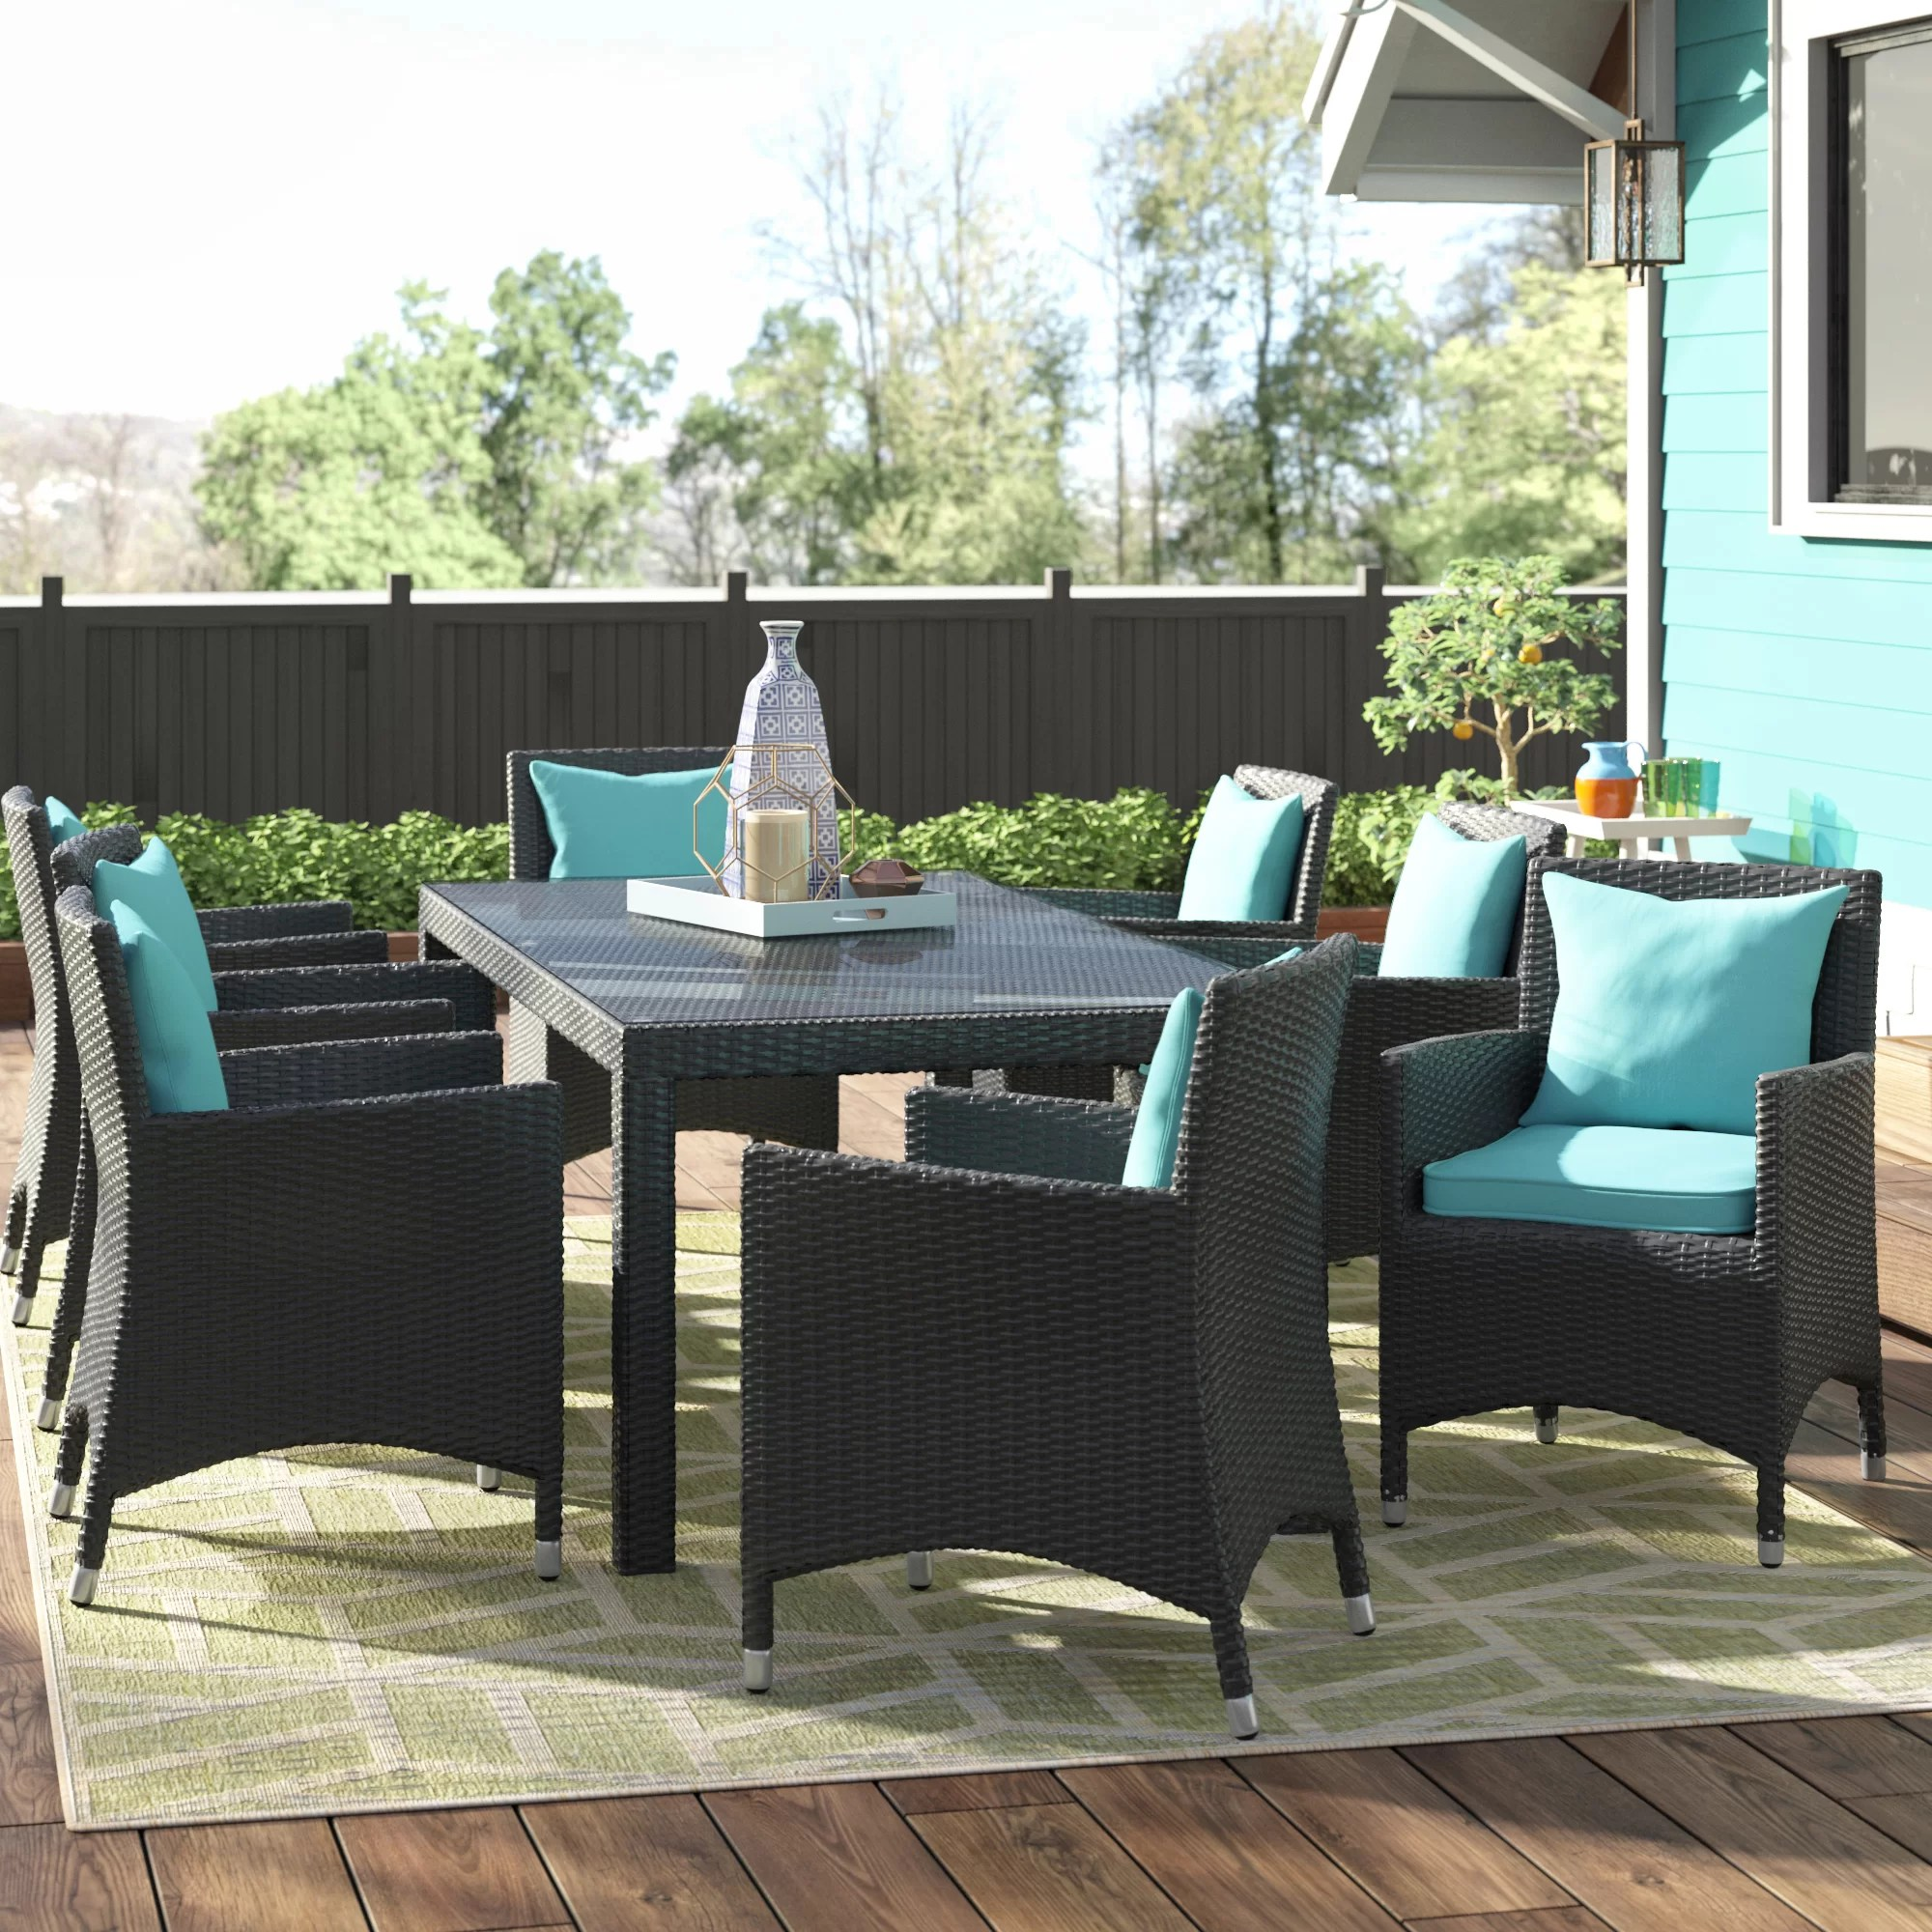 9 Piece Outdoor Dining Set Ryele 9 Piece Outdoor Patio Dining Set With Cushions